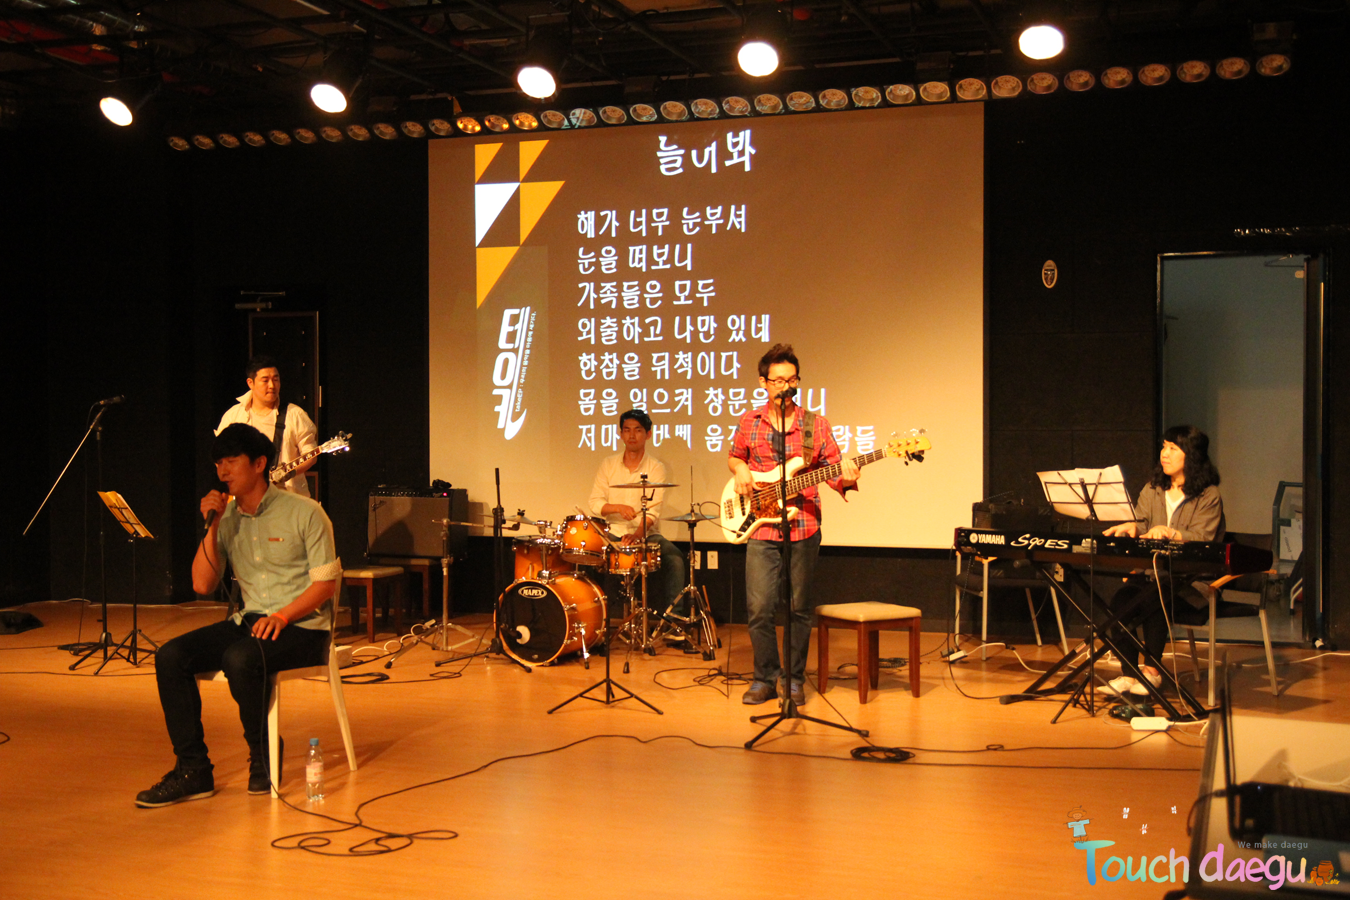 A performance team on stage playing song